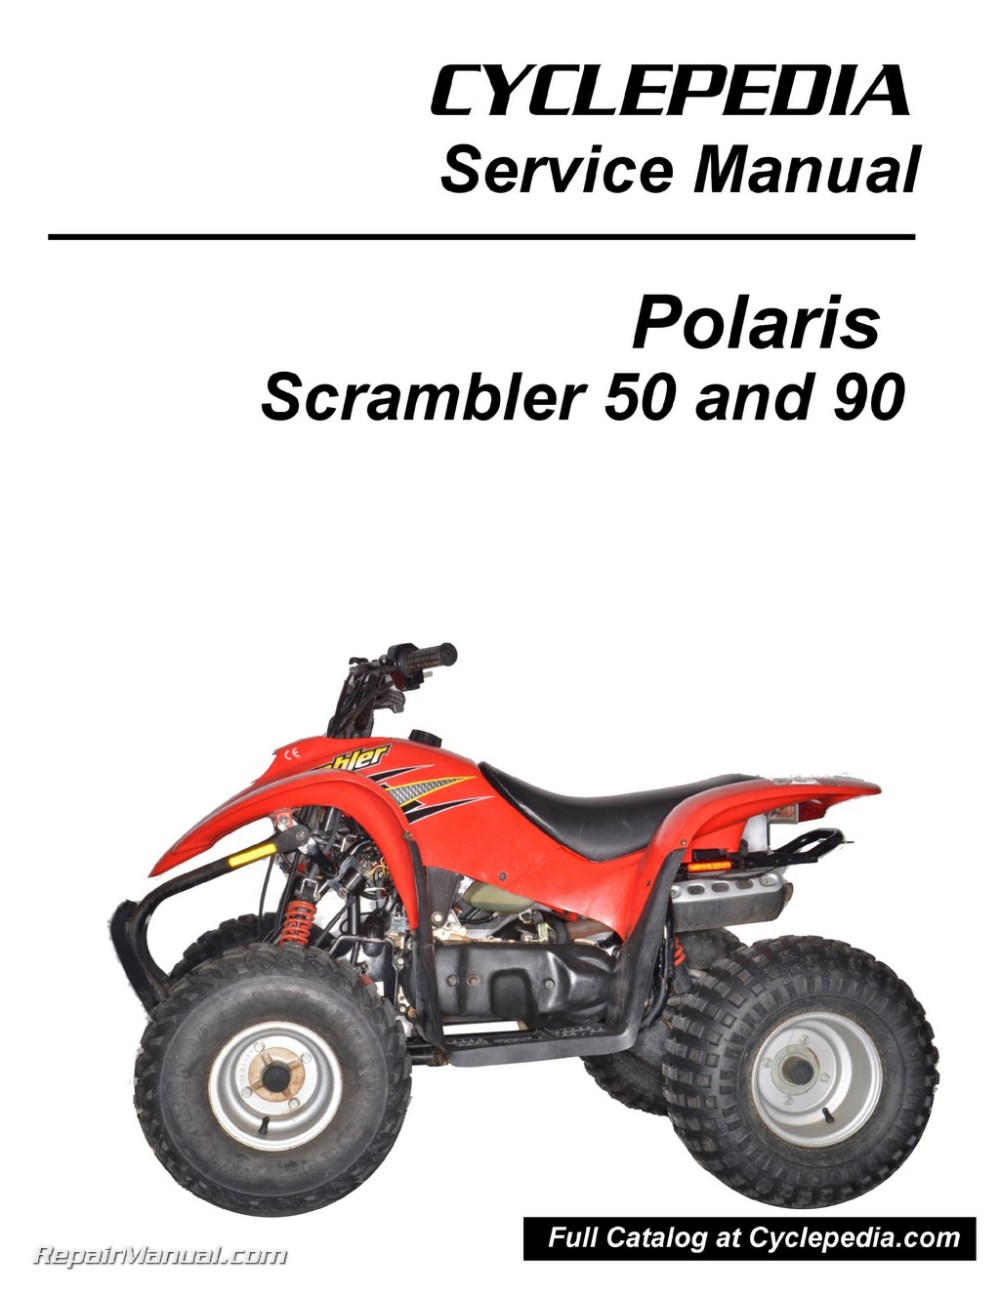 medium resolution of polaris 50cc 90cc scrambler atv print service manual by cyclepedia polaris wiring schematic 04 polaris scrambler 90cc wiring diagram